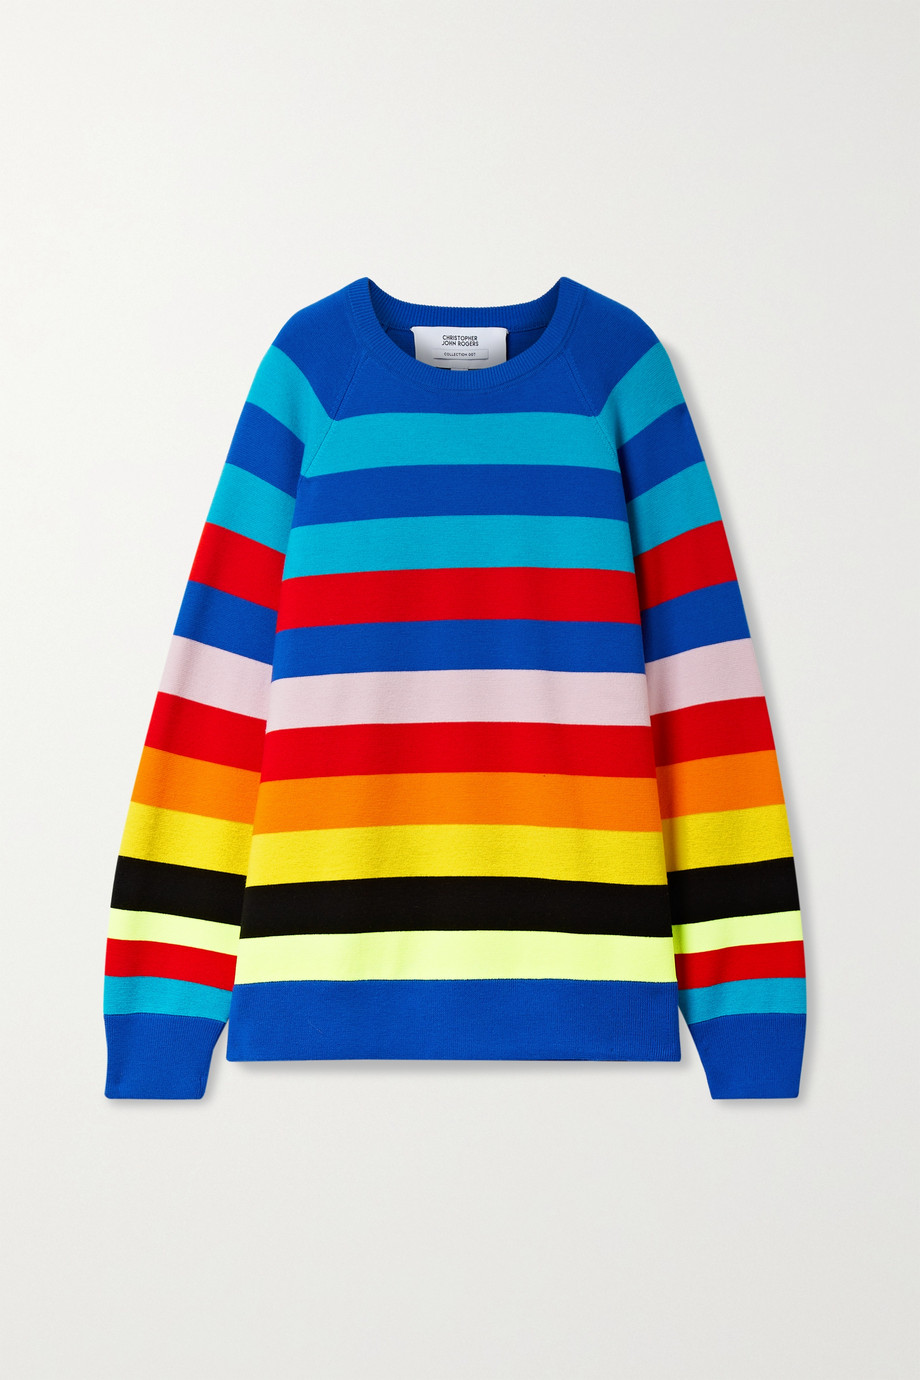 CHRISTOPHER JOHN ROGERS Striped wool-blend sweater